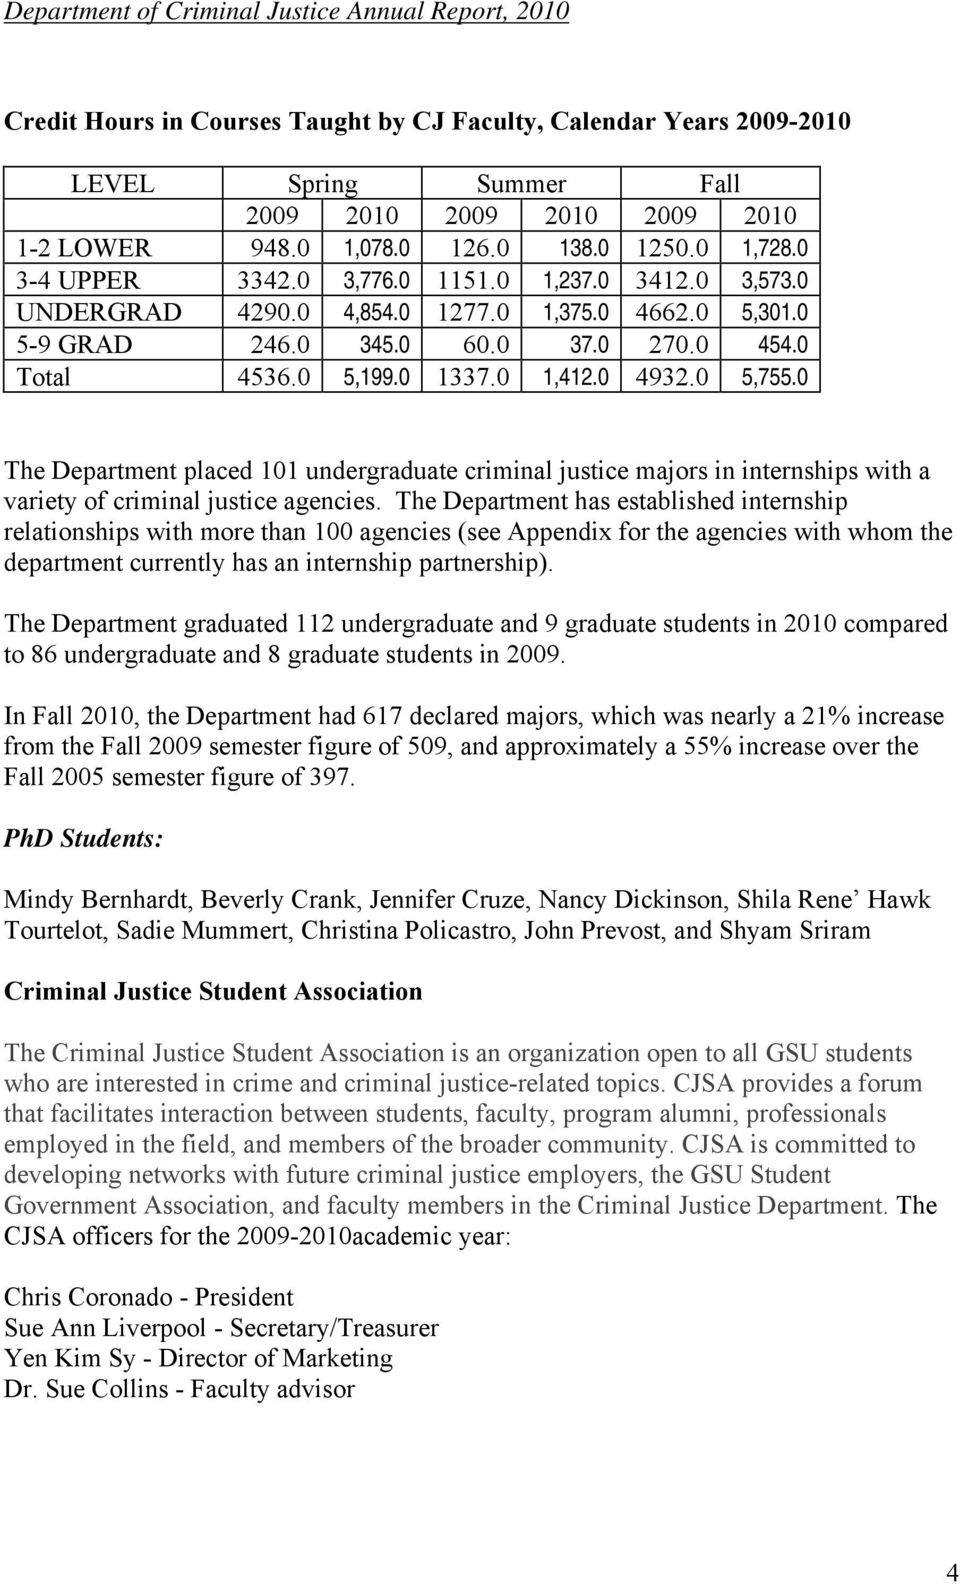 0 The Department placed 101 undergraduate criminal justice majors in internships with a variety of criminal justice agencies.